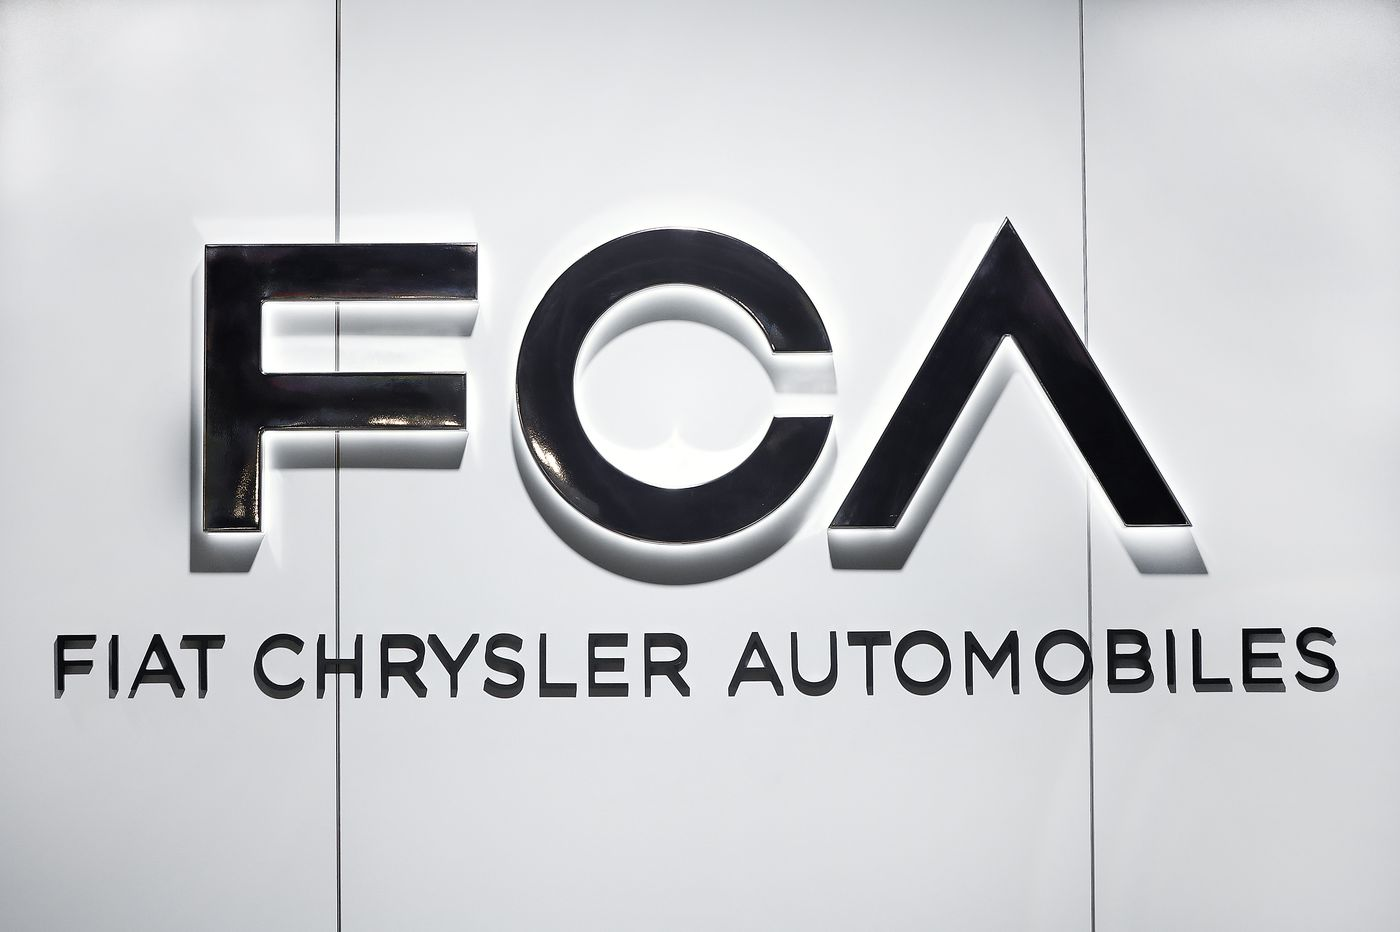 Fiat Chrysler merger speculation heats up … but what's new?